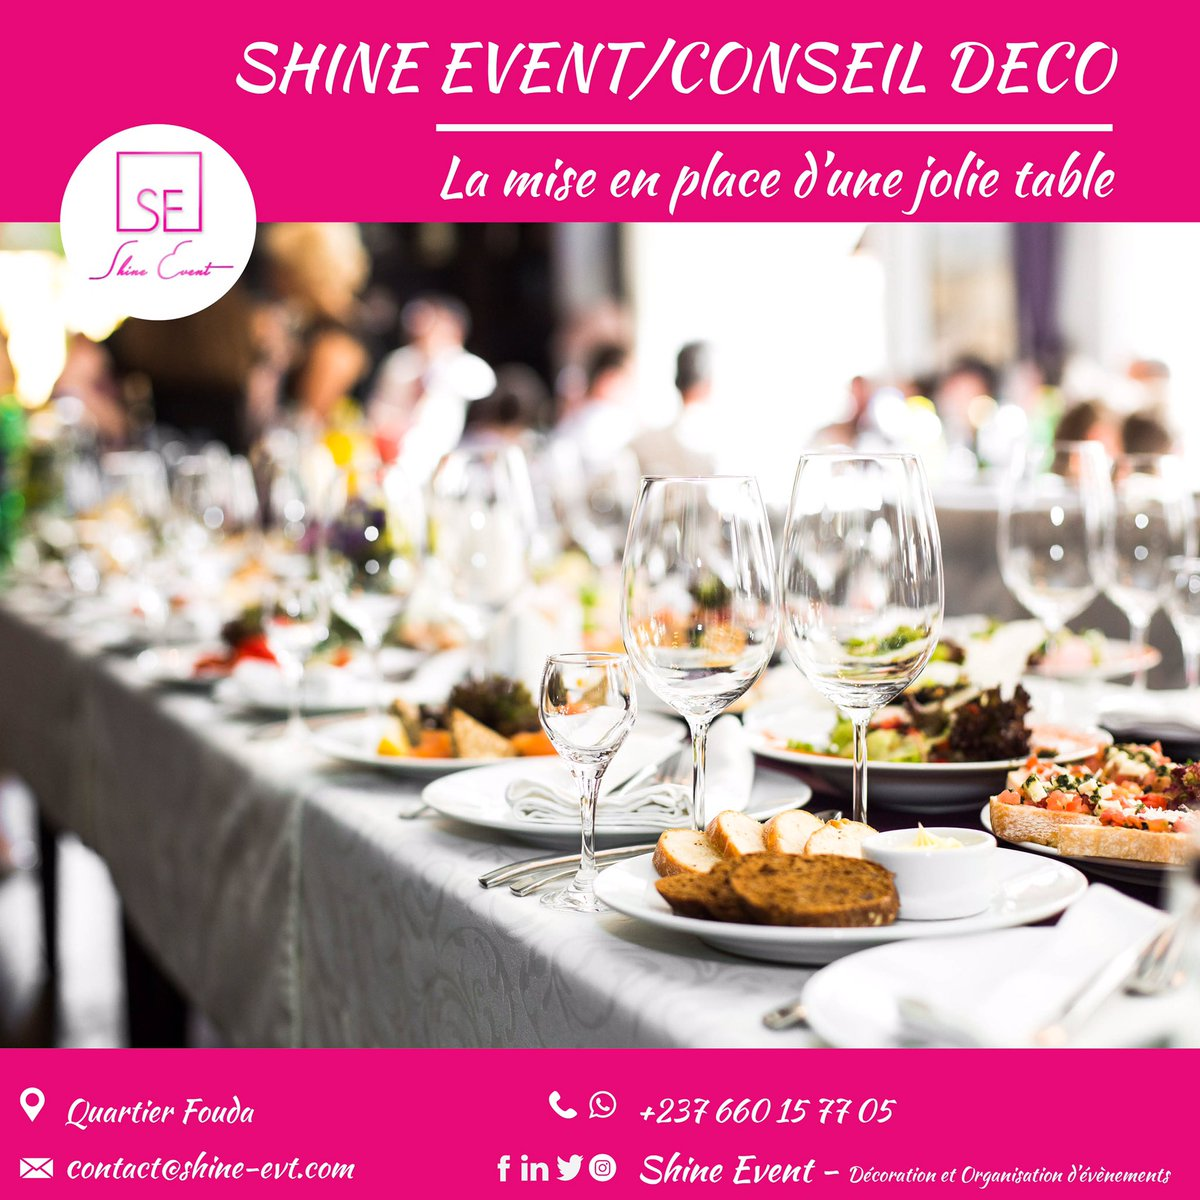 Vous désirez une décoration pareille pour vos tables ⁉️  Info.shinevent@gmail.com +237 662 32 64 54  #happiness #happynewyear  #lovelife #loveyourself #wedding #mariage #décoration #decoration #beauty #beautiful #funny #lol #lmao #lmfao #blingbling  #laugh #laughing #tweegram